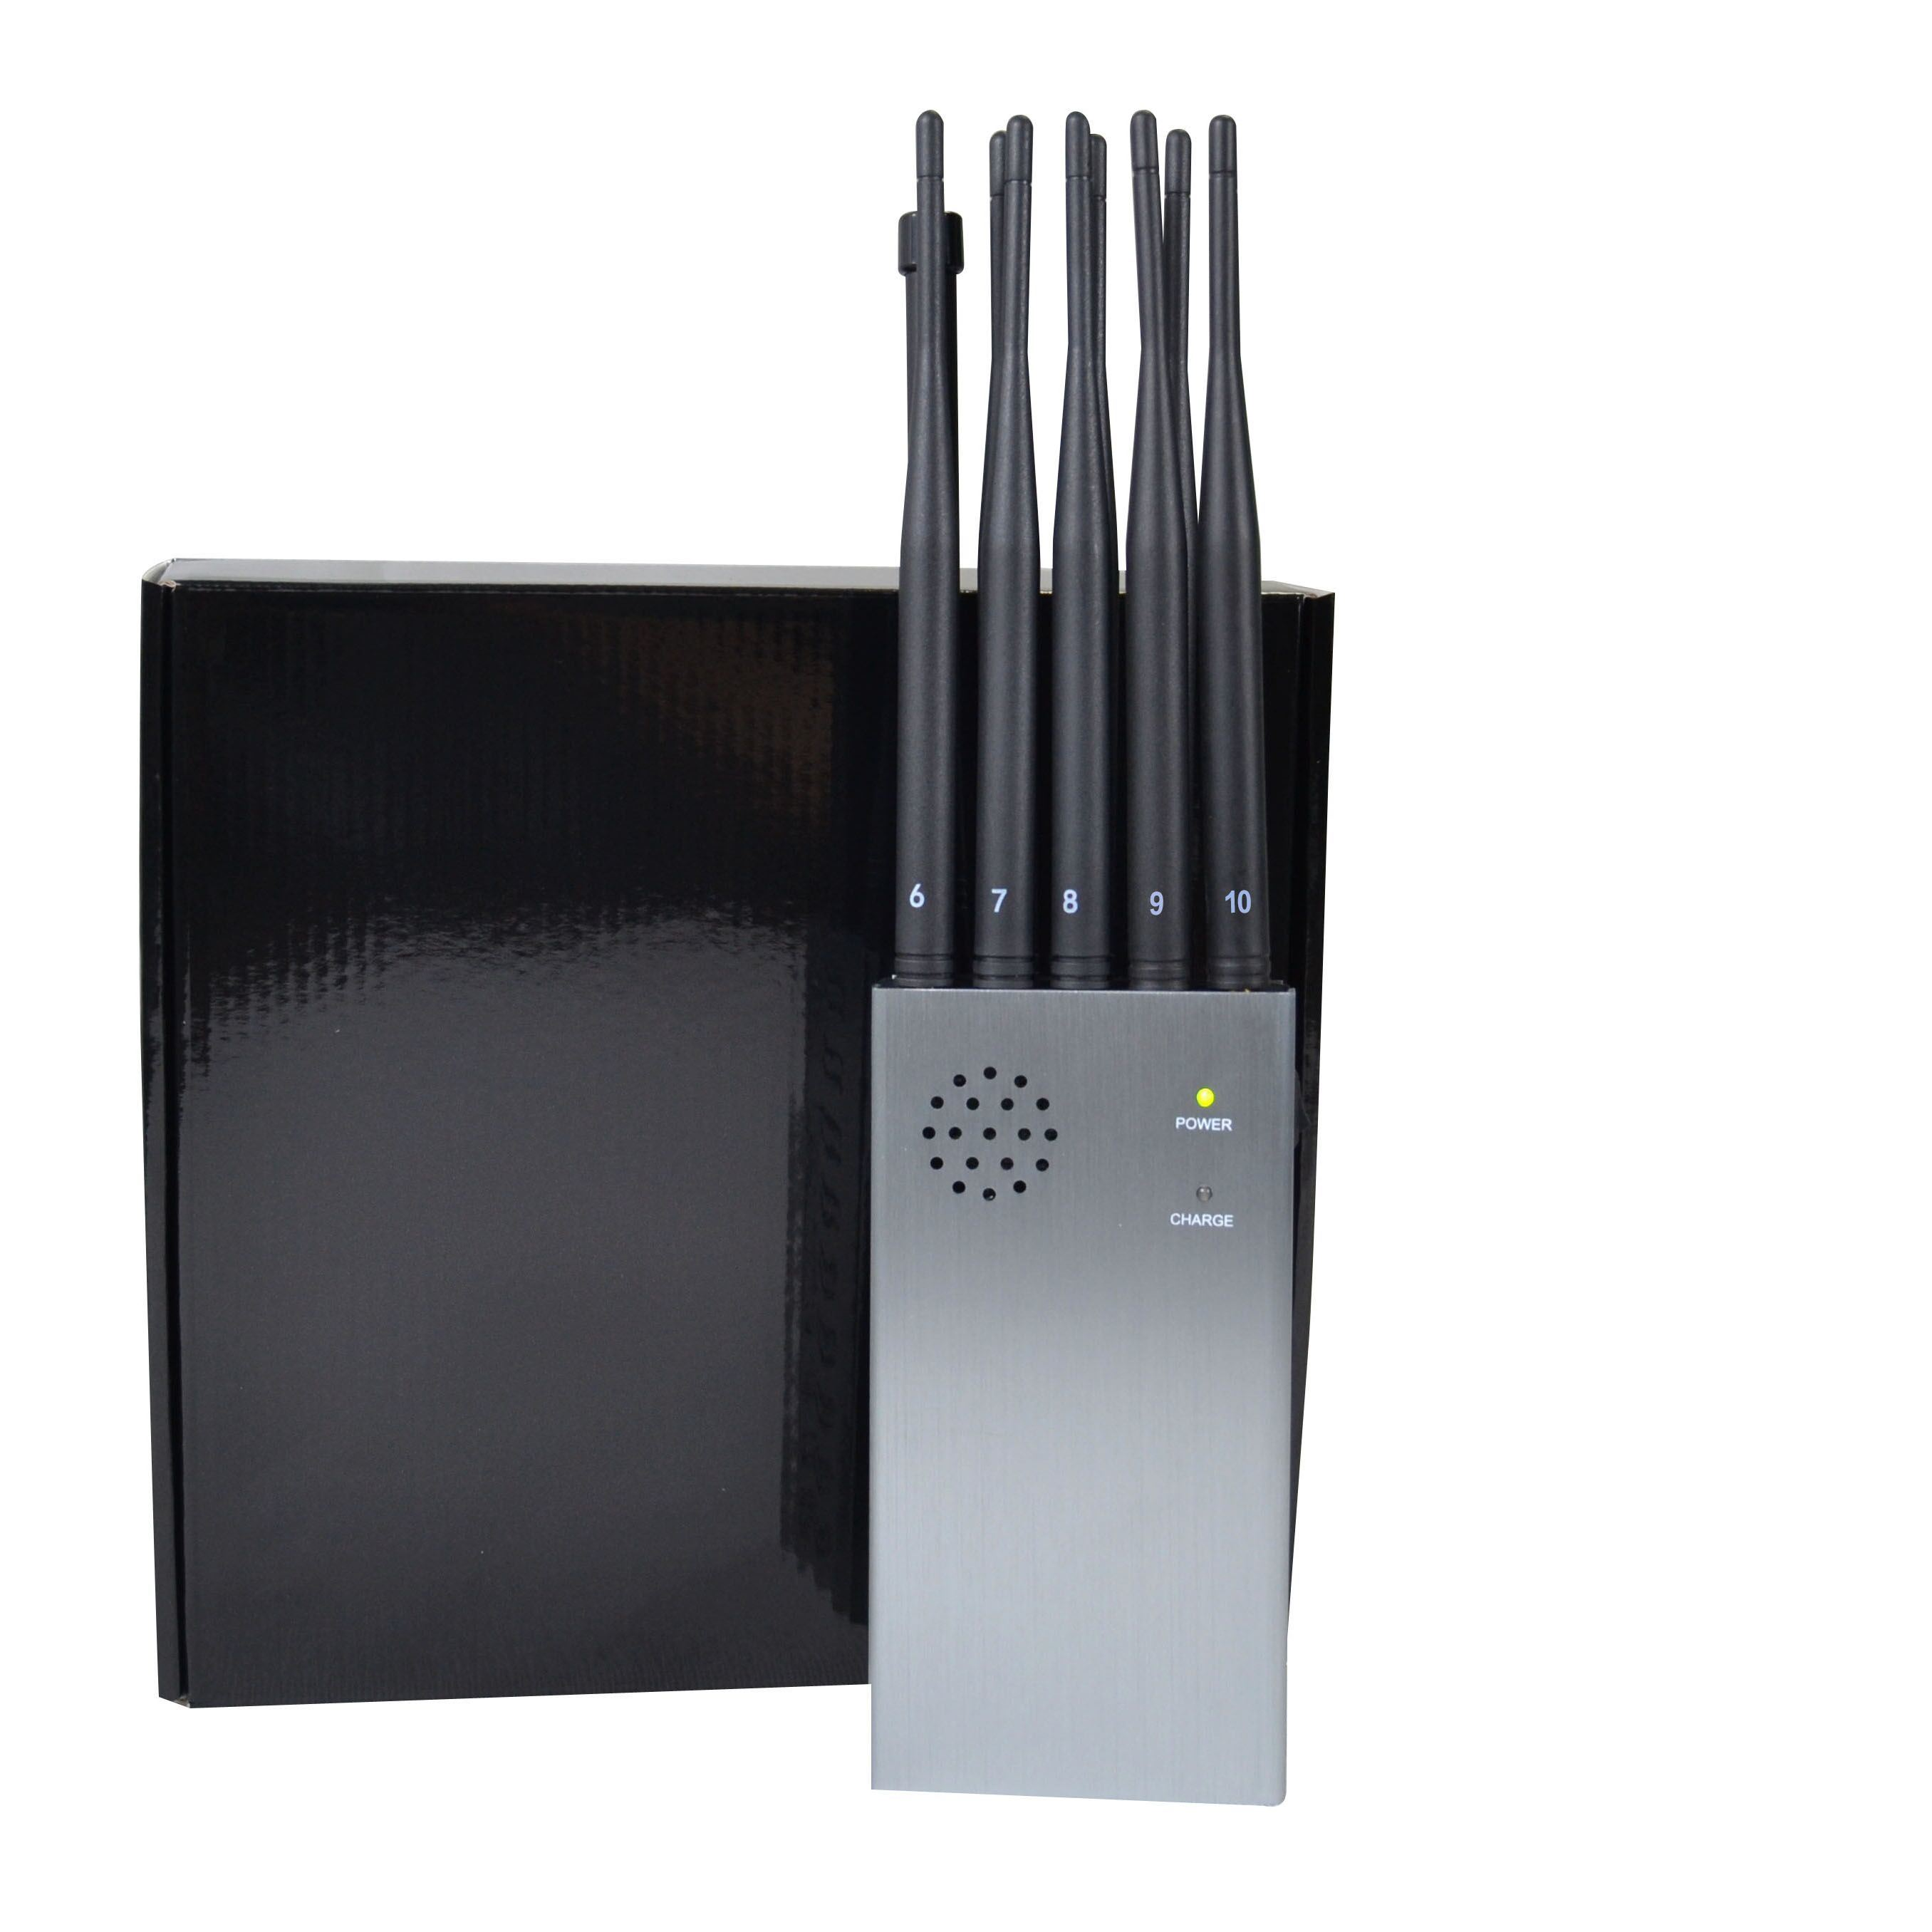 cellular jammer diy nail - China Handled Portable Jammer with 10 Antennas Newest Model Updated Version with 8000mA - China 8000mA Battery Jammer, Large Volume Power Signal Blocker